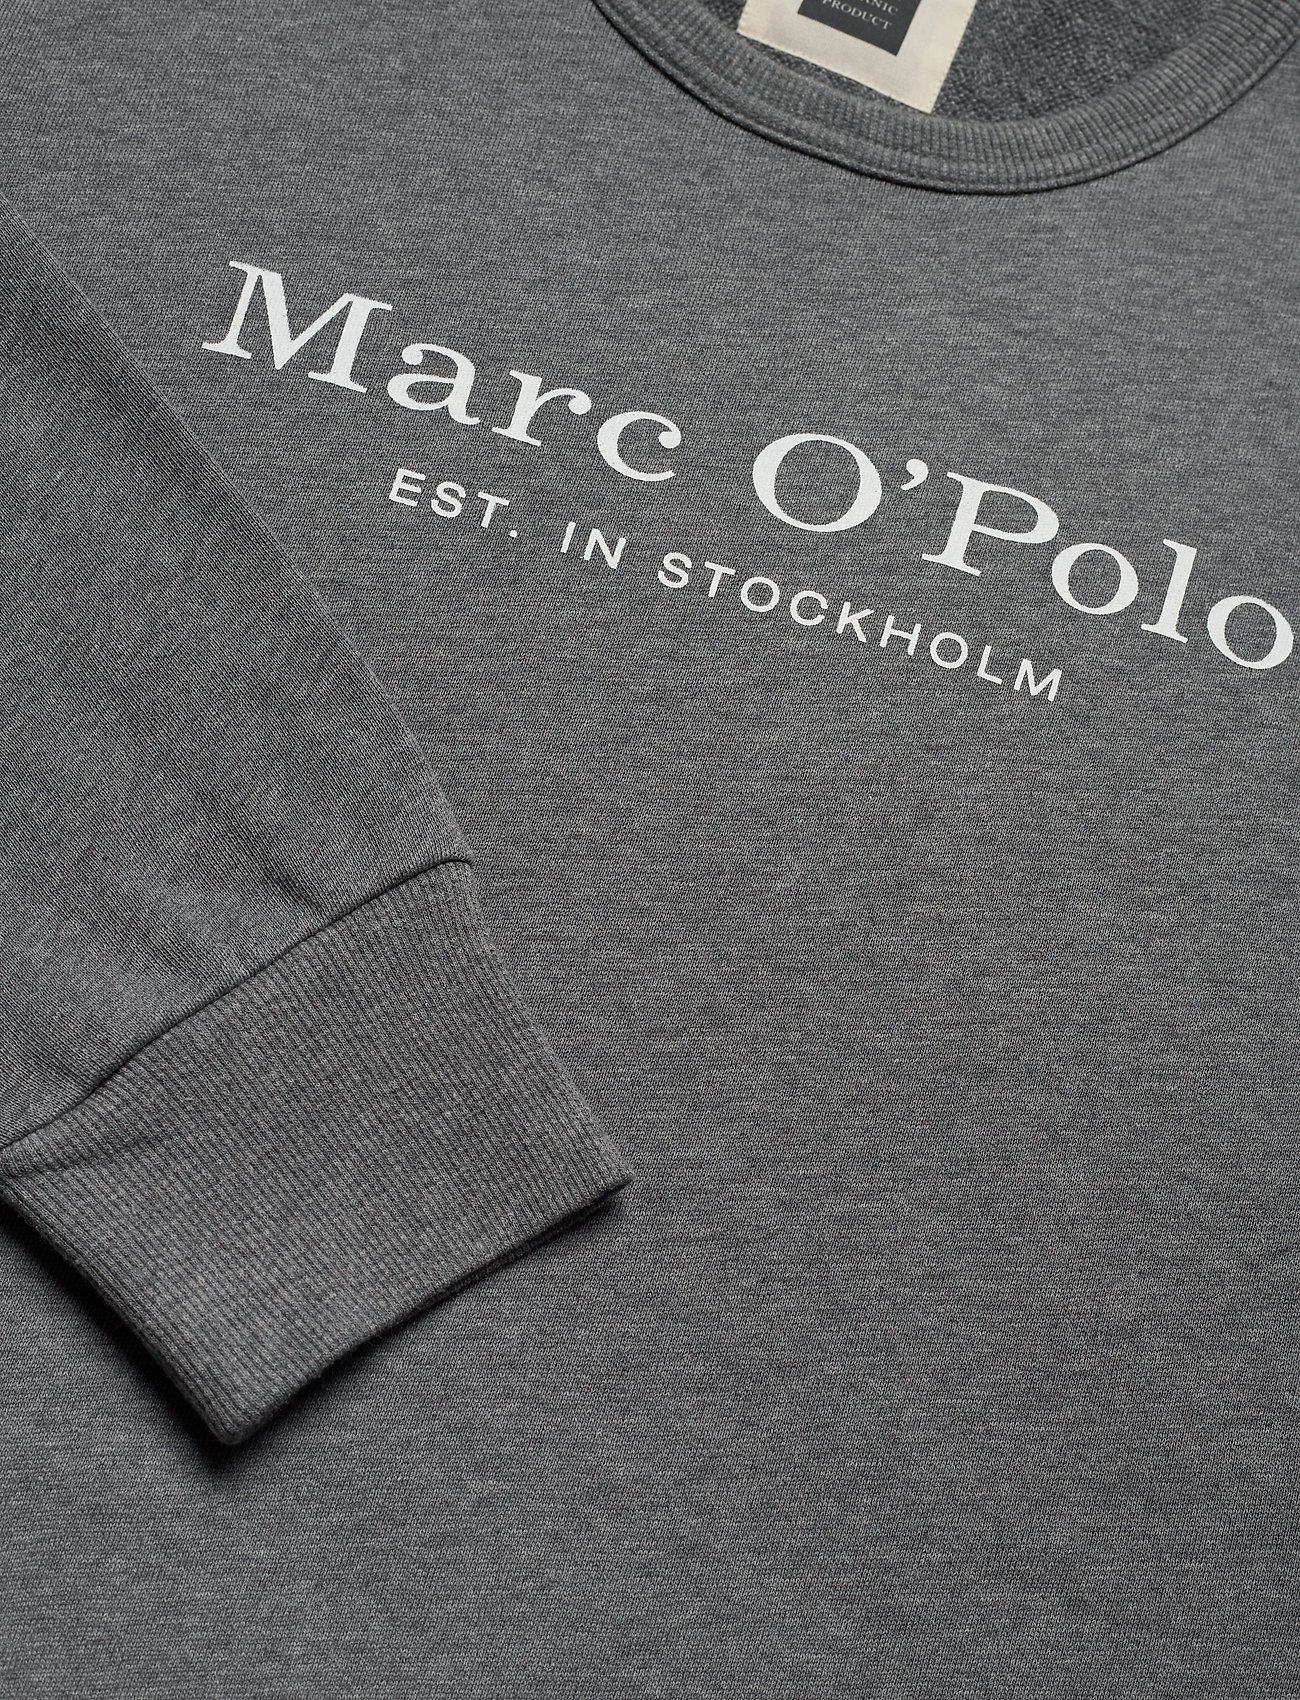 Marc O'Polo Sweatshirt- Sweats et sweats à capuche 1tjW87mB Vps34 IYneD2iQ